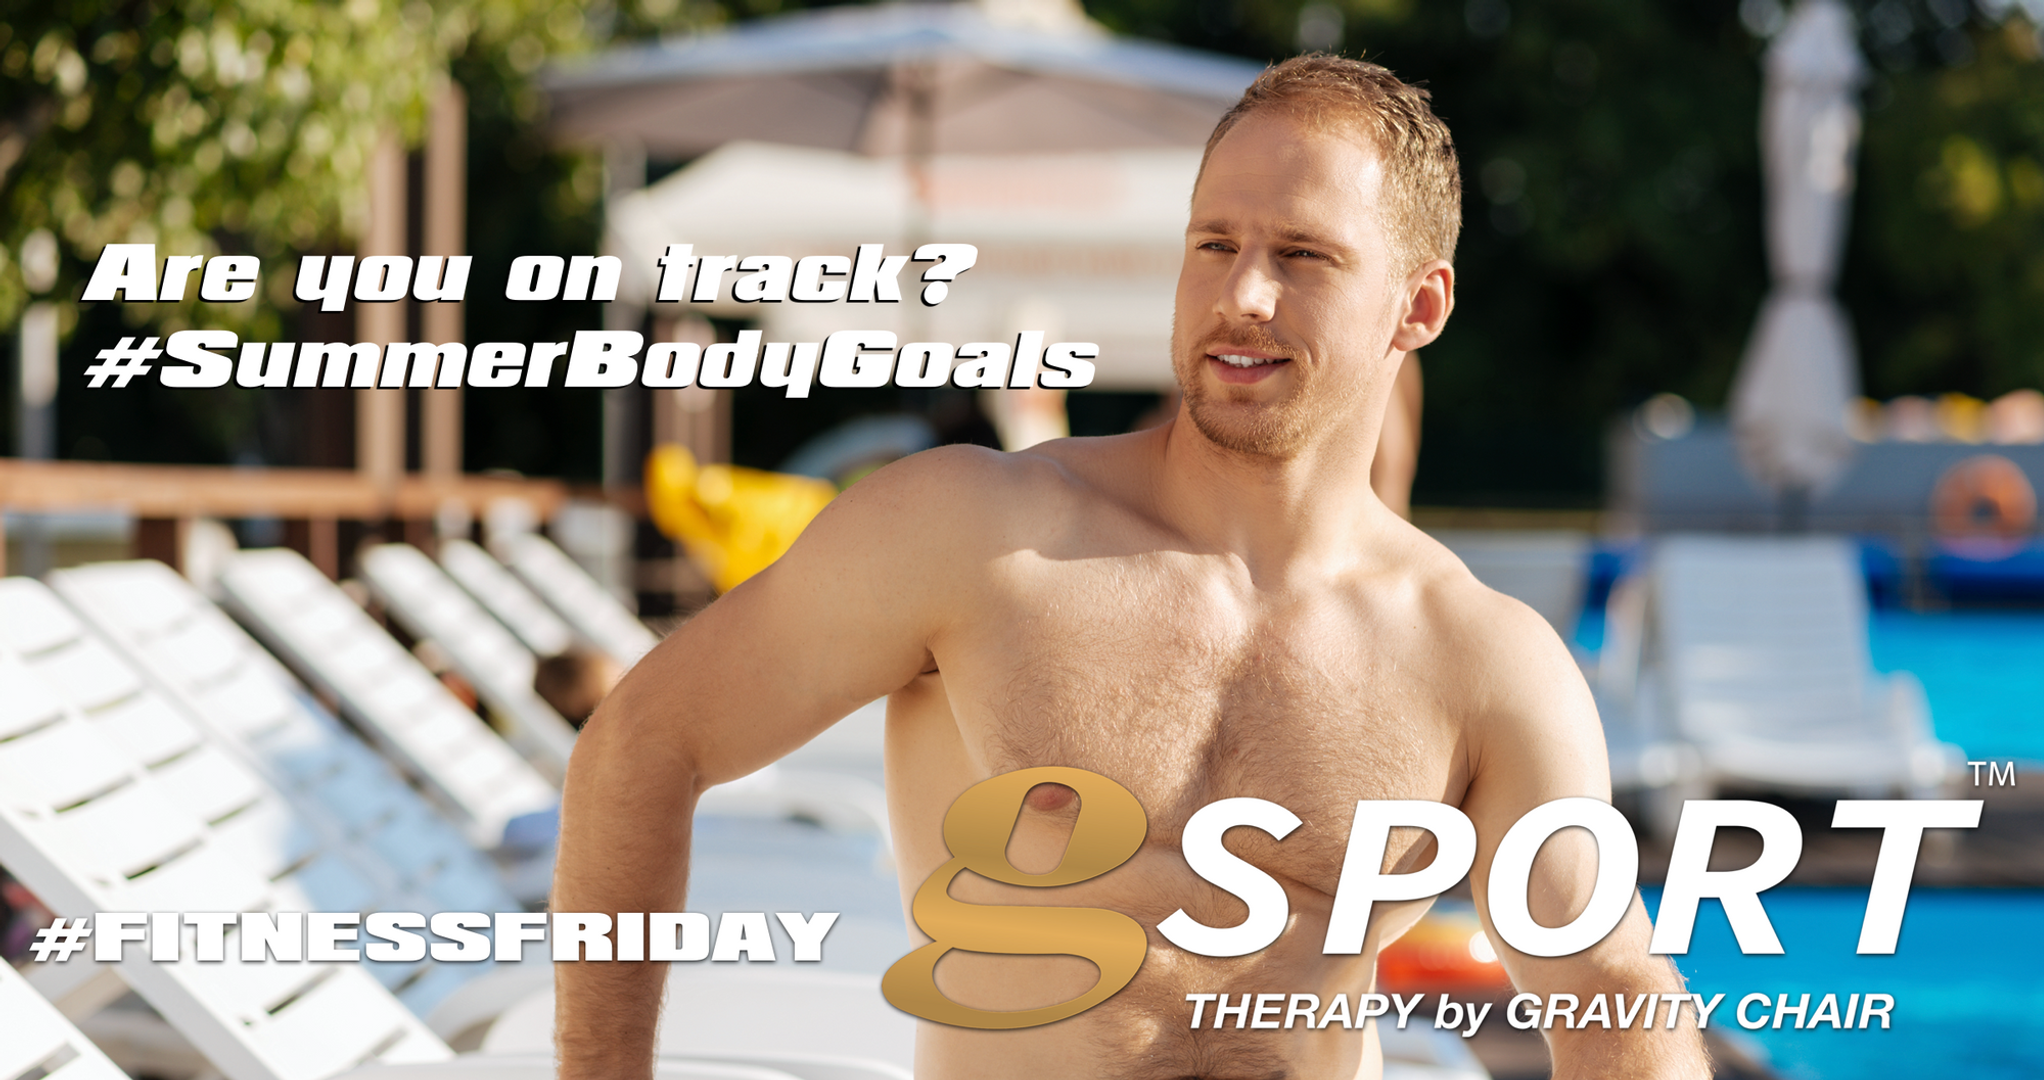 GSPORT_FITNESSFRIDAY03.png